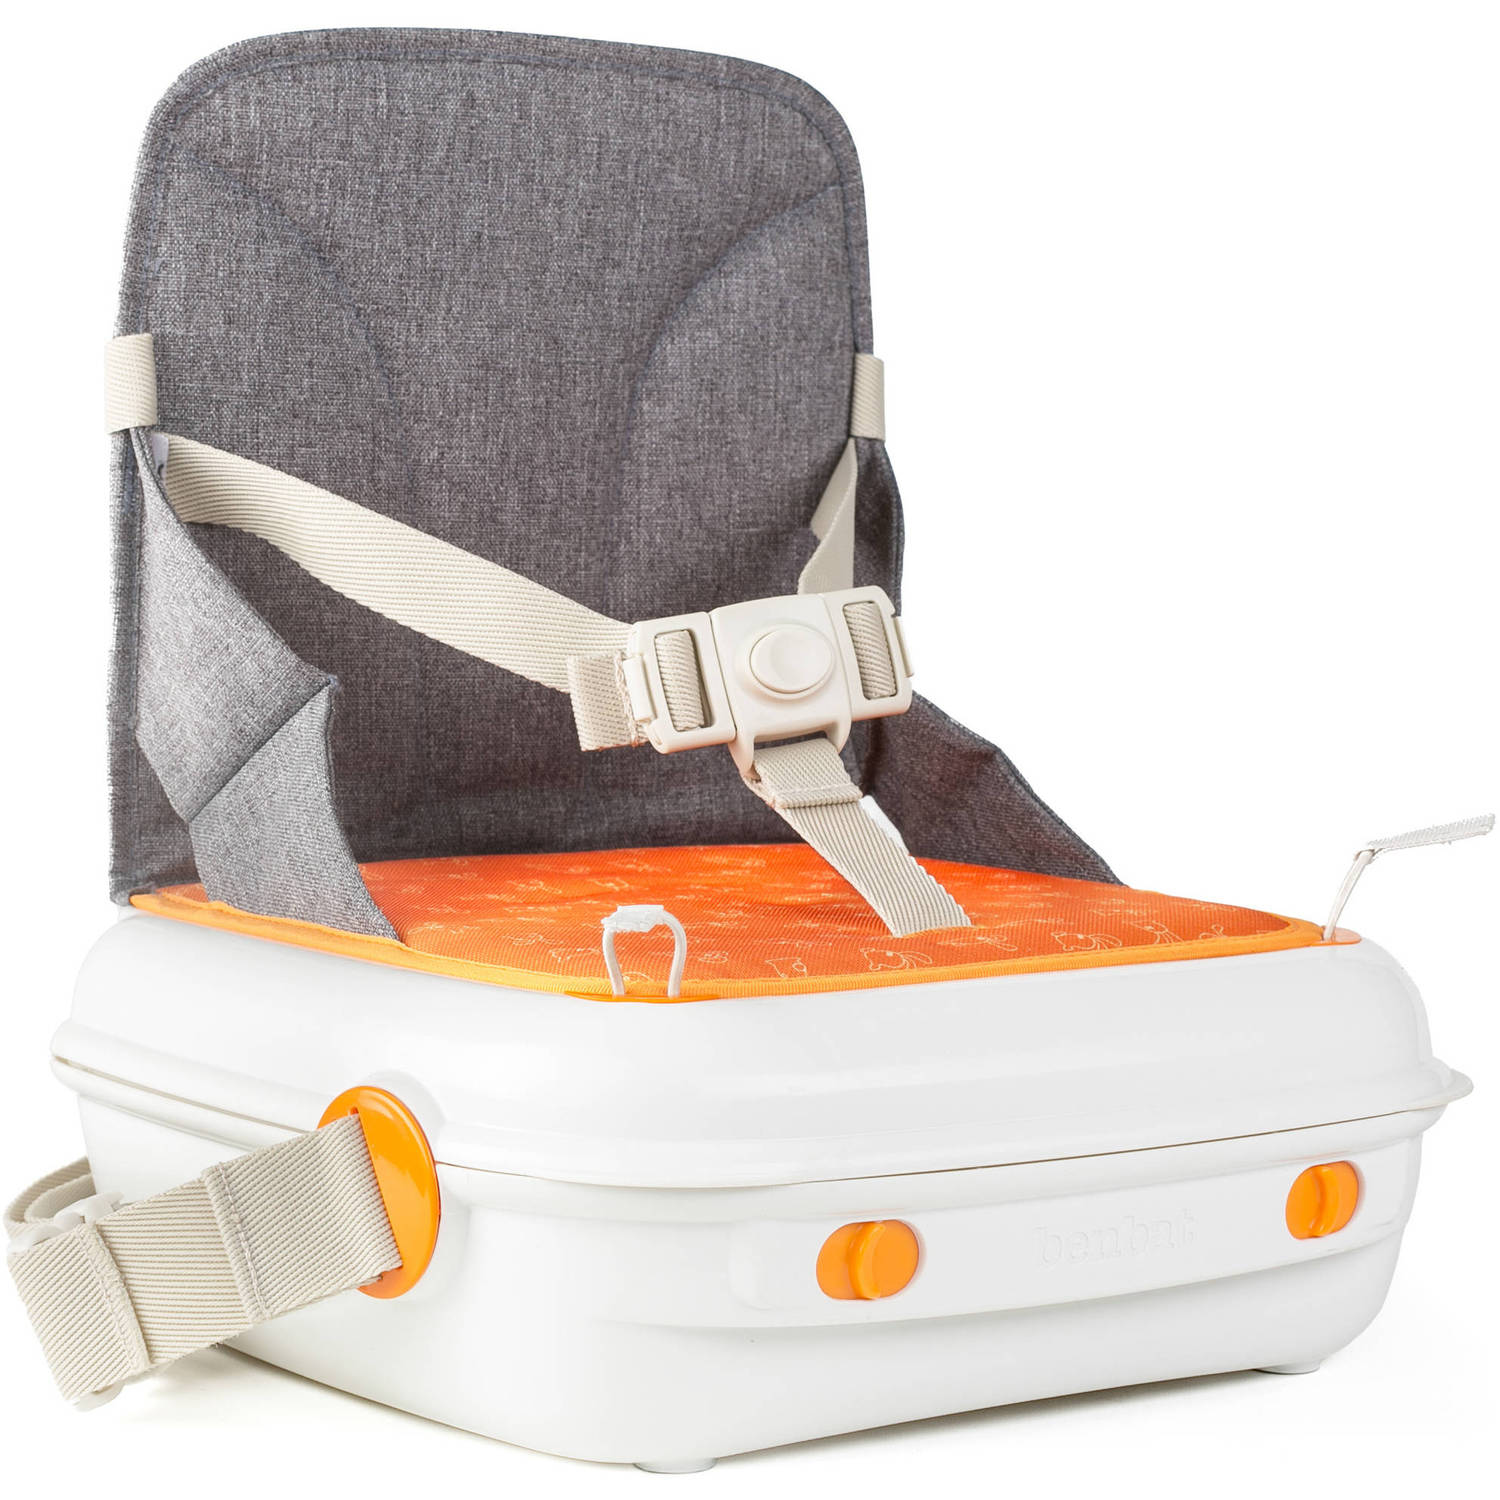 BenBat YummiGo Booster Seat, Choose Your Color